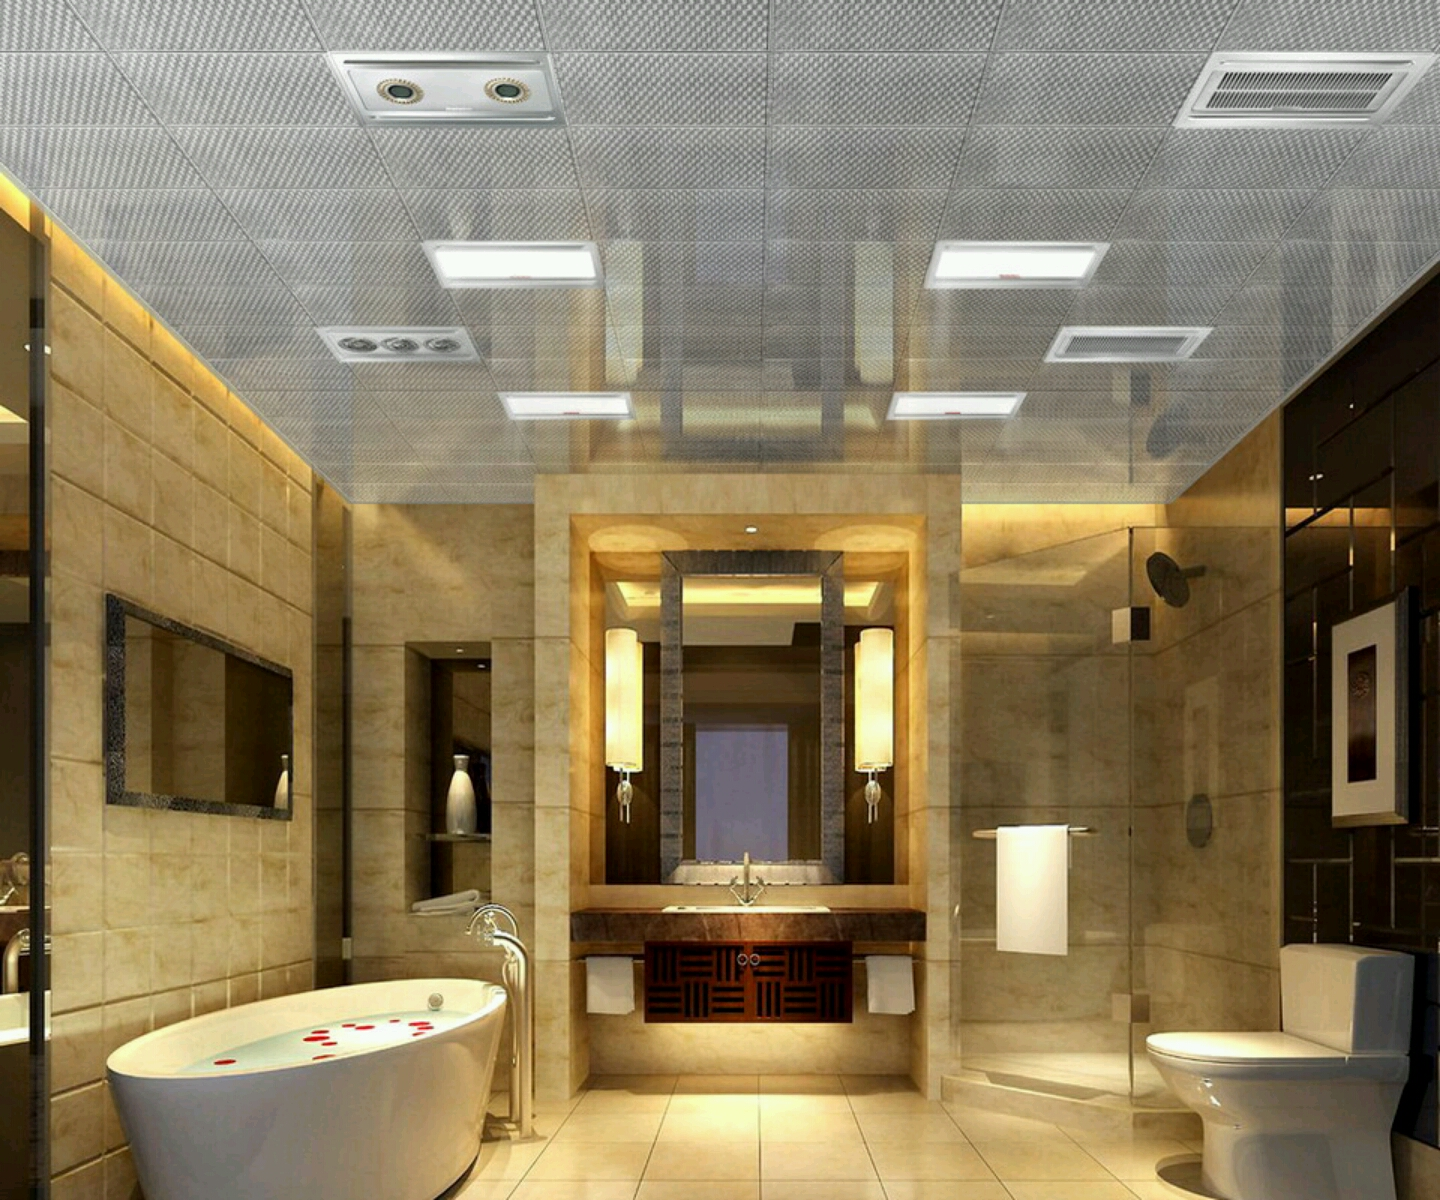 New home designs latest luxury bathrooms designs ideas for Bathroom ideas luxury